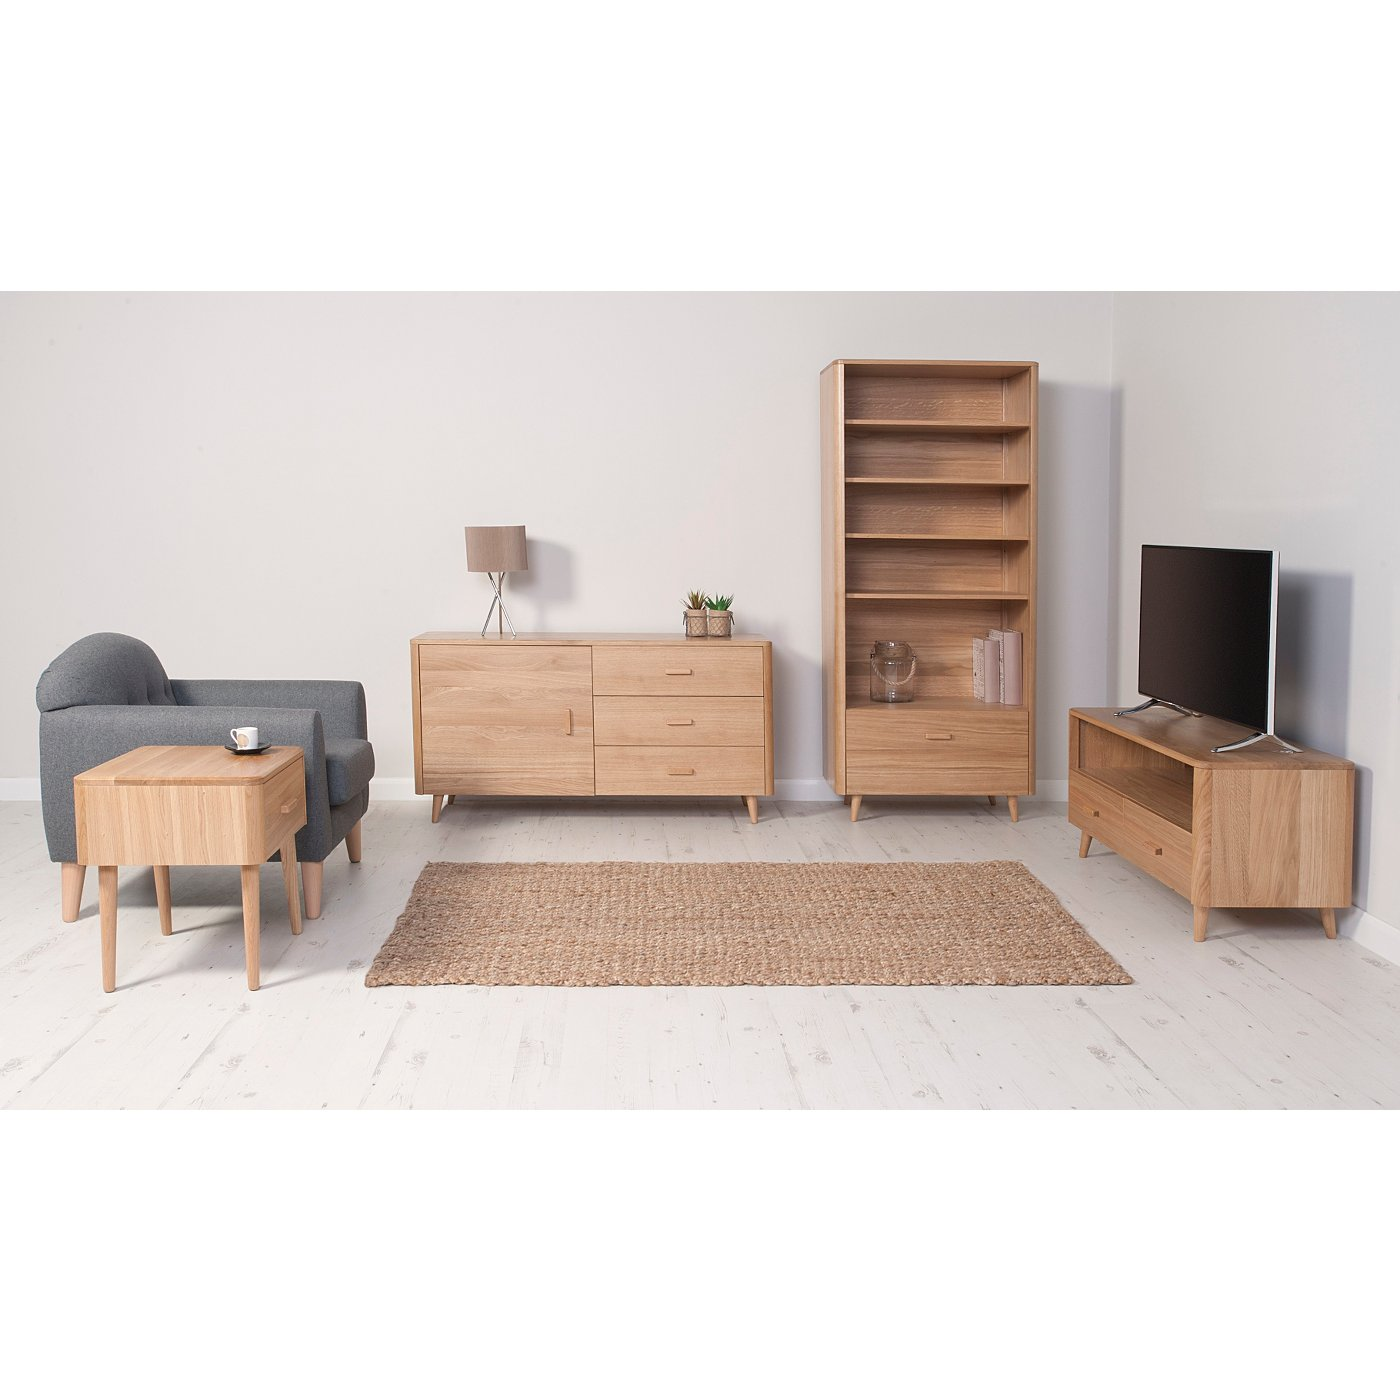 Oak Furniture Living Room George Home Idris Living Room Furniture Range Oak And Oak Veneer